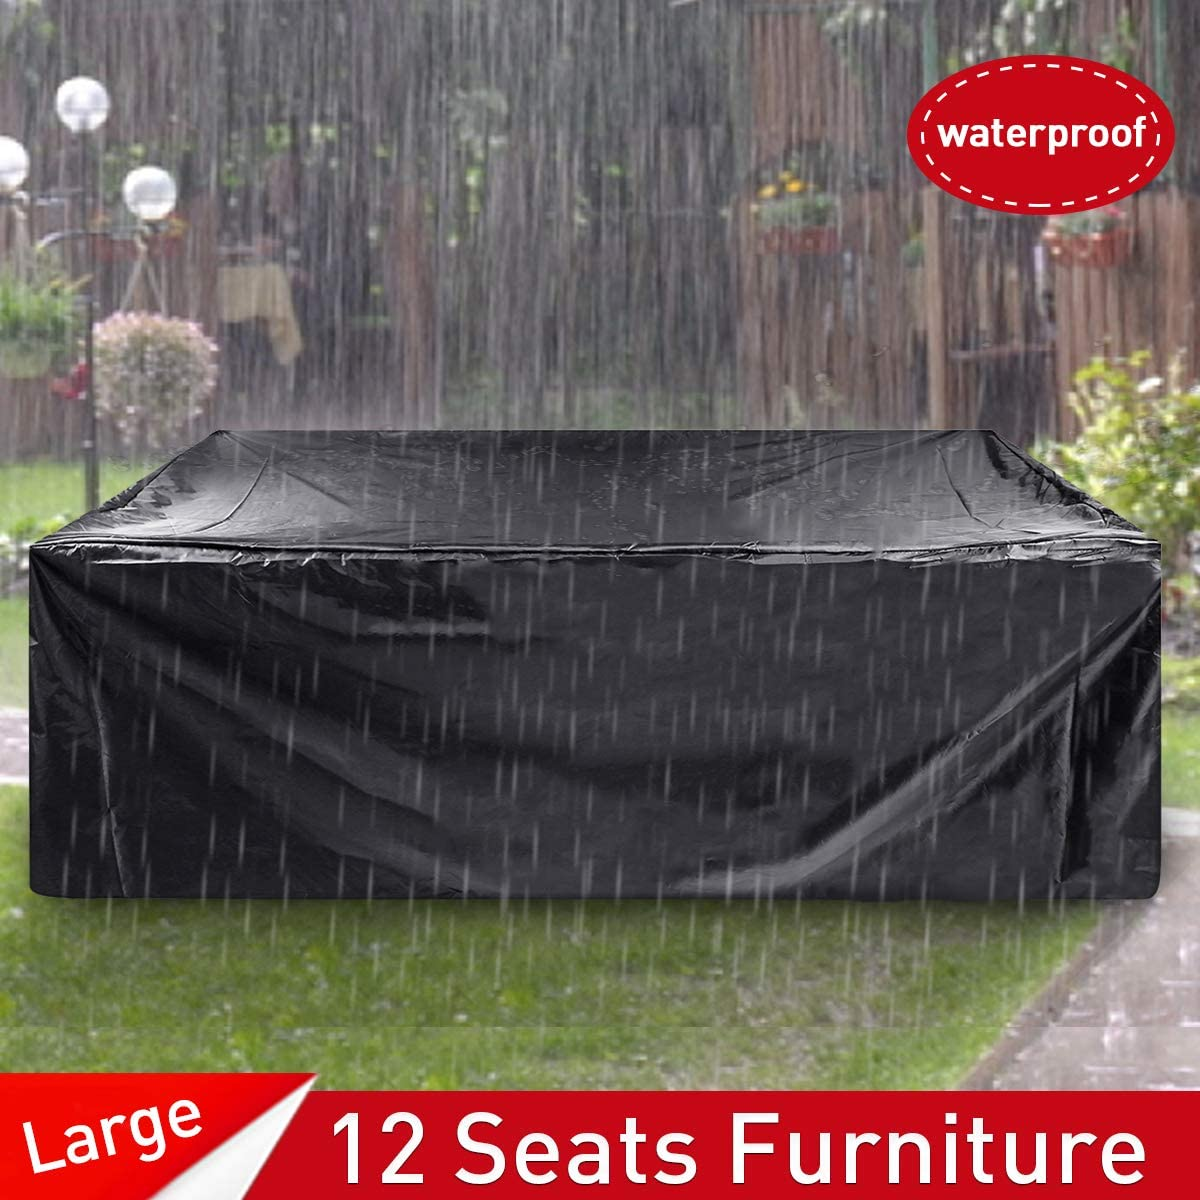 ESSORT Patio Furniture Covers, Extra Large Outdoor Furniture Set Covers Waterproof, Rain Snow Dust Wind-Proof, Anti-UV, Fits for 12 Seats 124 x63 x29 210D